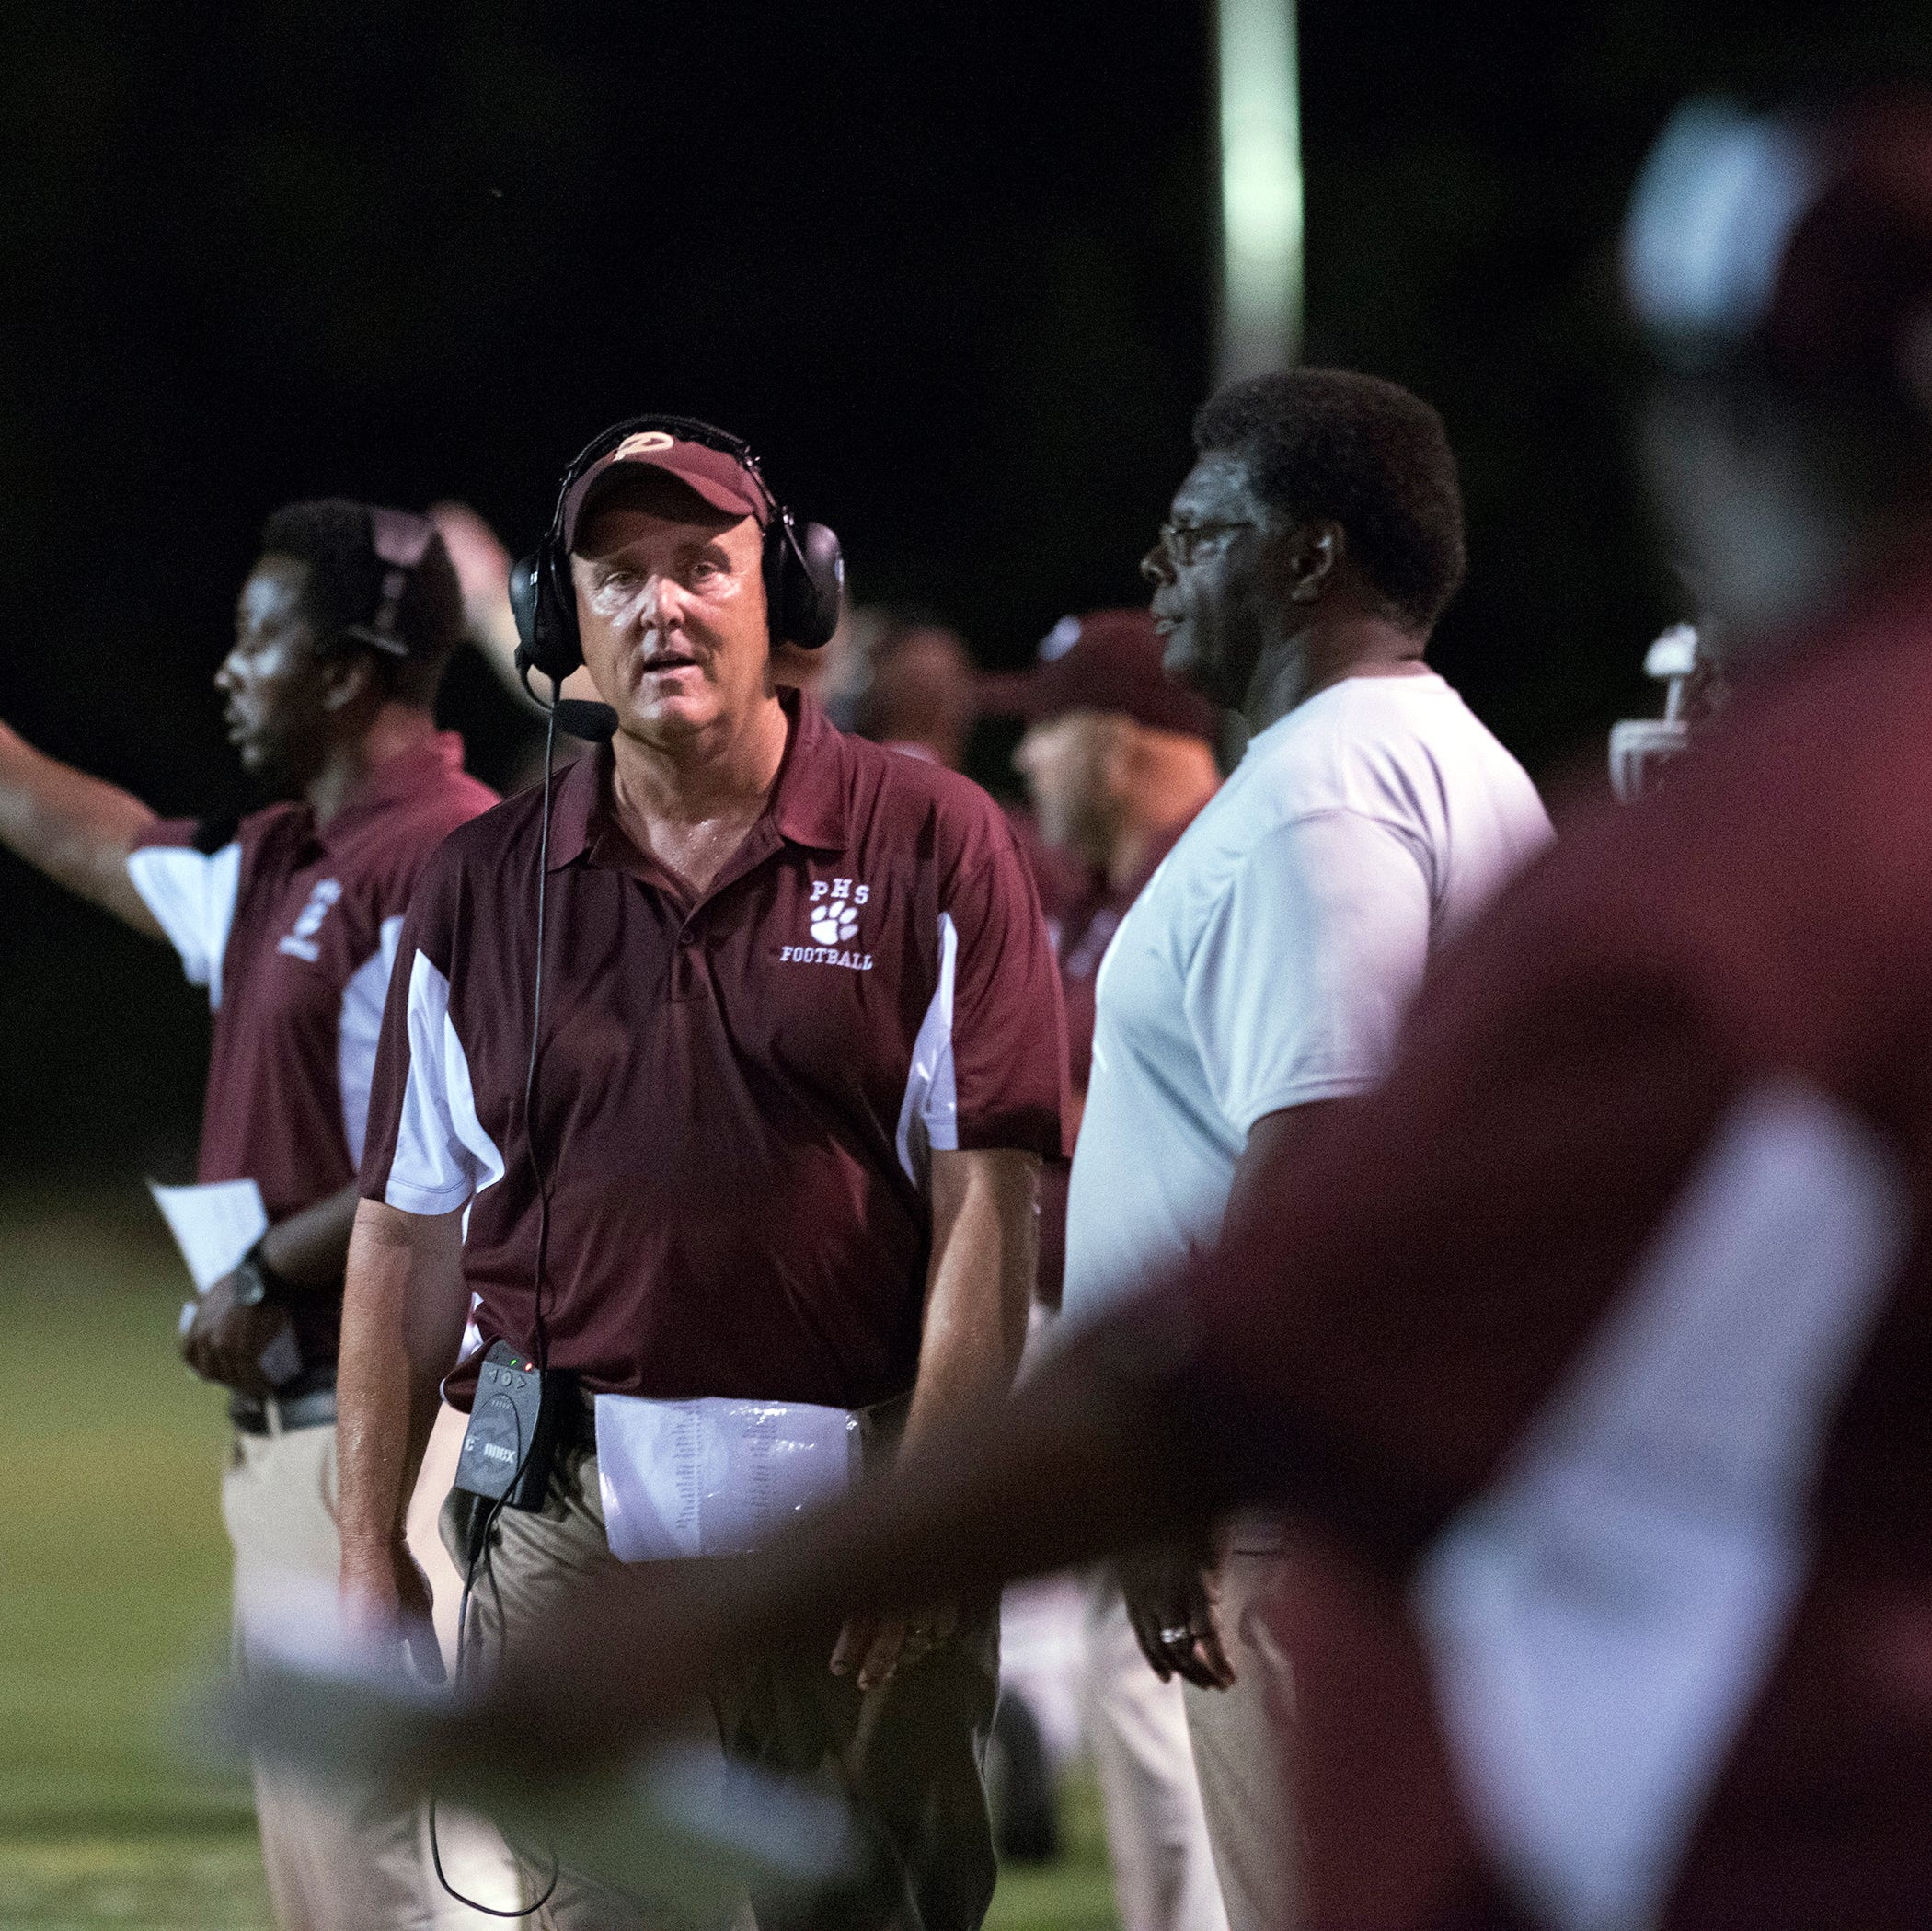 Pensacola High football coach Mike Mincy suspended indefinitely